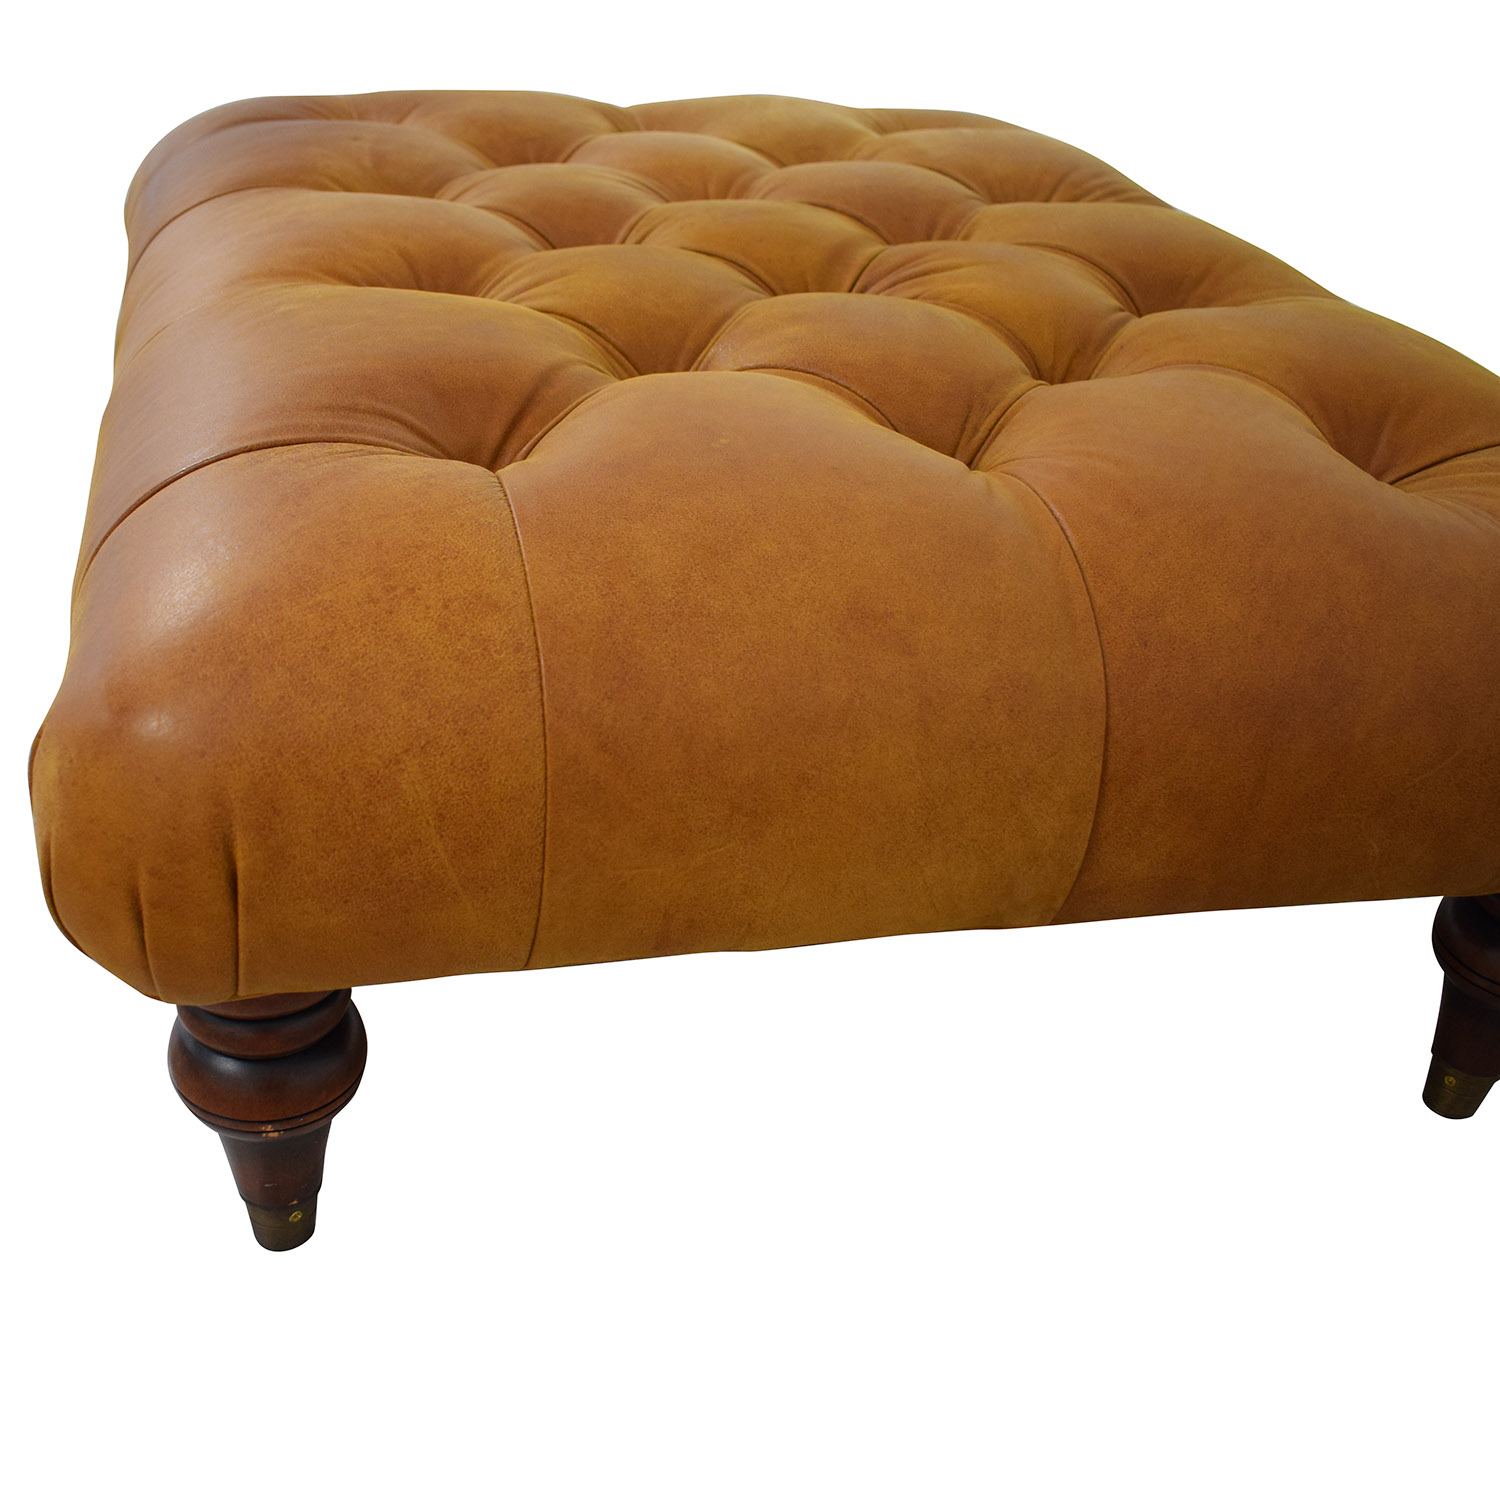 buy Laura Ashley Radley Leather Ottoman Laura Ashley Chairs